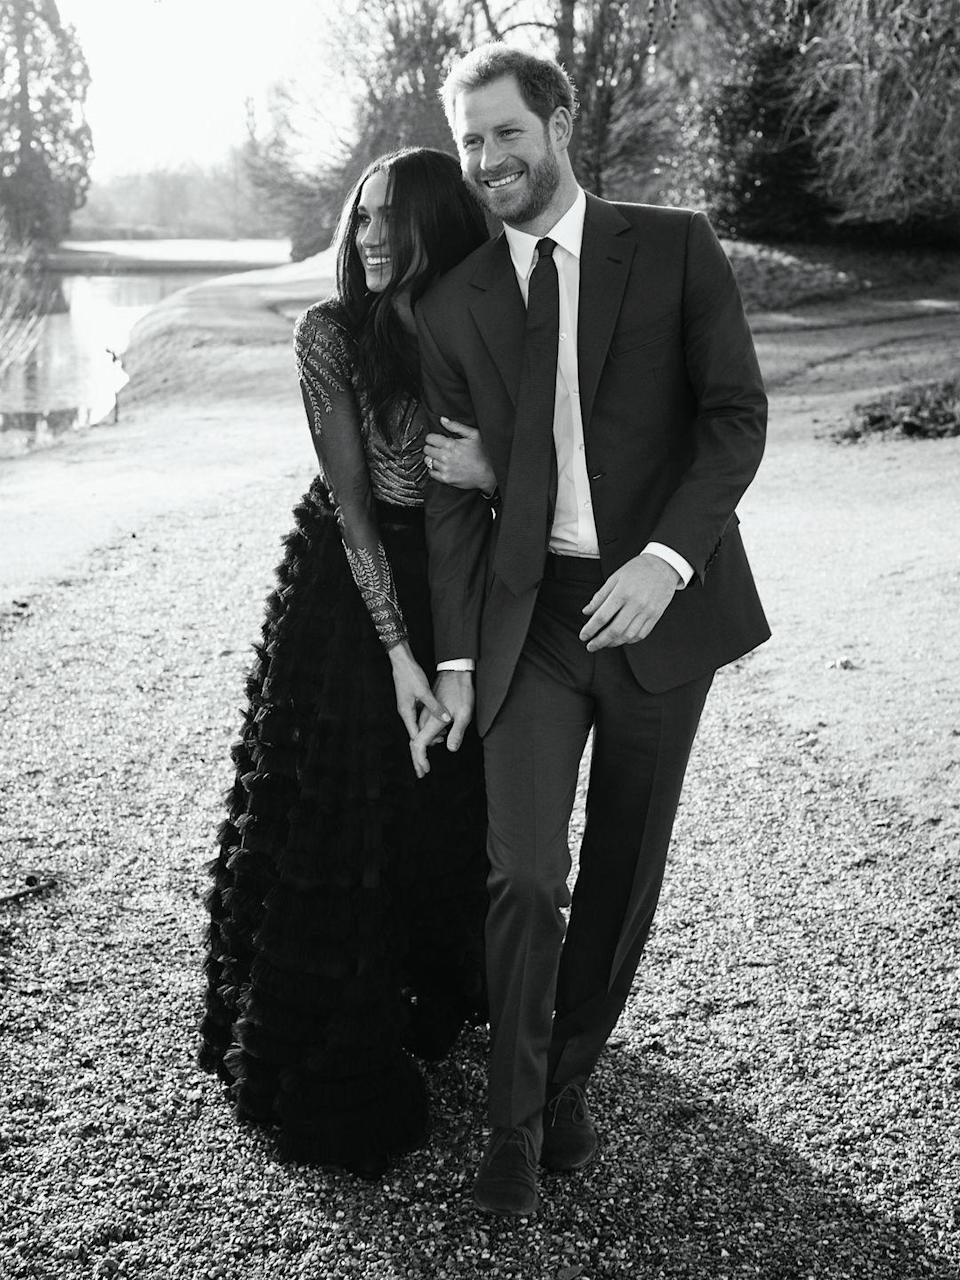 "<p>Upon their engagement in 2017, Prince Harry and Meghan Markle confirmed that their relationship was ""<a href=""https://www.harpersbazaar.com/celebrity/latest/a15872194/who-introduced-prince-harry-meghan-markle/"" rel=""nofollow noopener"" target=""_blank"" data-ylk=""slk:definitely a set up"" class=""link rapid-noclick-resp"">definitely a set up</a>."" Harry revealed he and Meghan were introduced by a mutual friend, but the couple chose to protect their matchmaker's privacy. However, <a href=""http://www.eonline.com/news/908595/countdown-to-the-royal-wedding-prince-harry-and-meghan-markle-s-secret-matchmaker-finally-revealed"" rel=""nofollow noopener"" target=""_blank"" data-ylk=""slk:E! reported"" class=""link rapid-noclick-resp""><em>E!</em> reported</a> soon after, that their mutual friend, Violet von Westenholz, introduced the couple. </p><p>Violet's father is a baron (Piers Von Westenholz) and a good friend of Prince Charles. She's ""been in Harry's trusted inner circle of friends for years,"" according to <em>E!</em>. Her younger sister, Victoria, was previously even considered one of the prince's <a class=""link rapid-noclick-resp"" href=""http://www.dailymail.co.uk/femail/article-1370136/Who-marry-Prince-Harry-The-women-bag-Britains-eligible-prince.html"" rel=""nofollow noopener"" target=""_blank"" data-ylk=""slk:potential girlfriends"">potential girlfriends</a>. Harry and Meghan met through a blind date in the summer of 2016, and got engaged in Botswana. Their wedding took place on May 19, 2018.</p>"